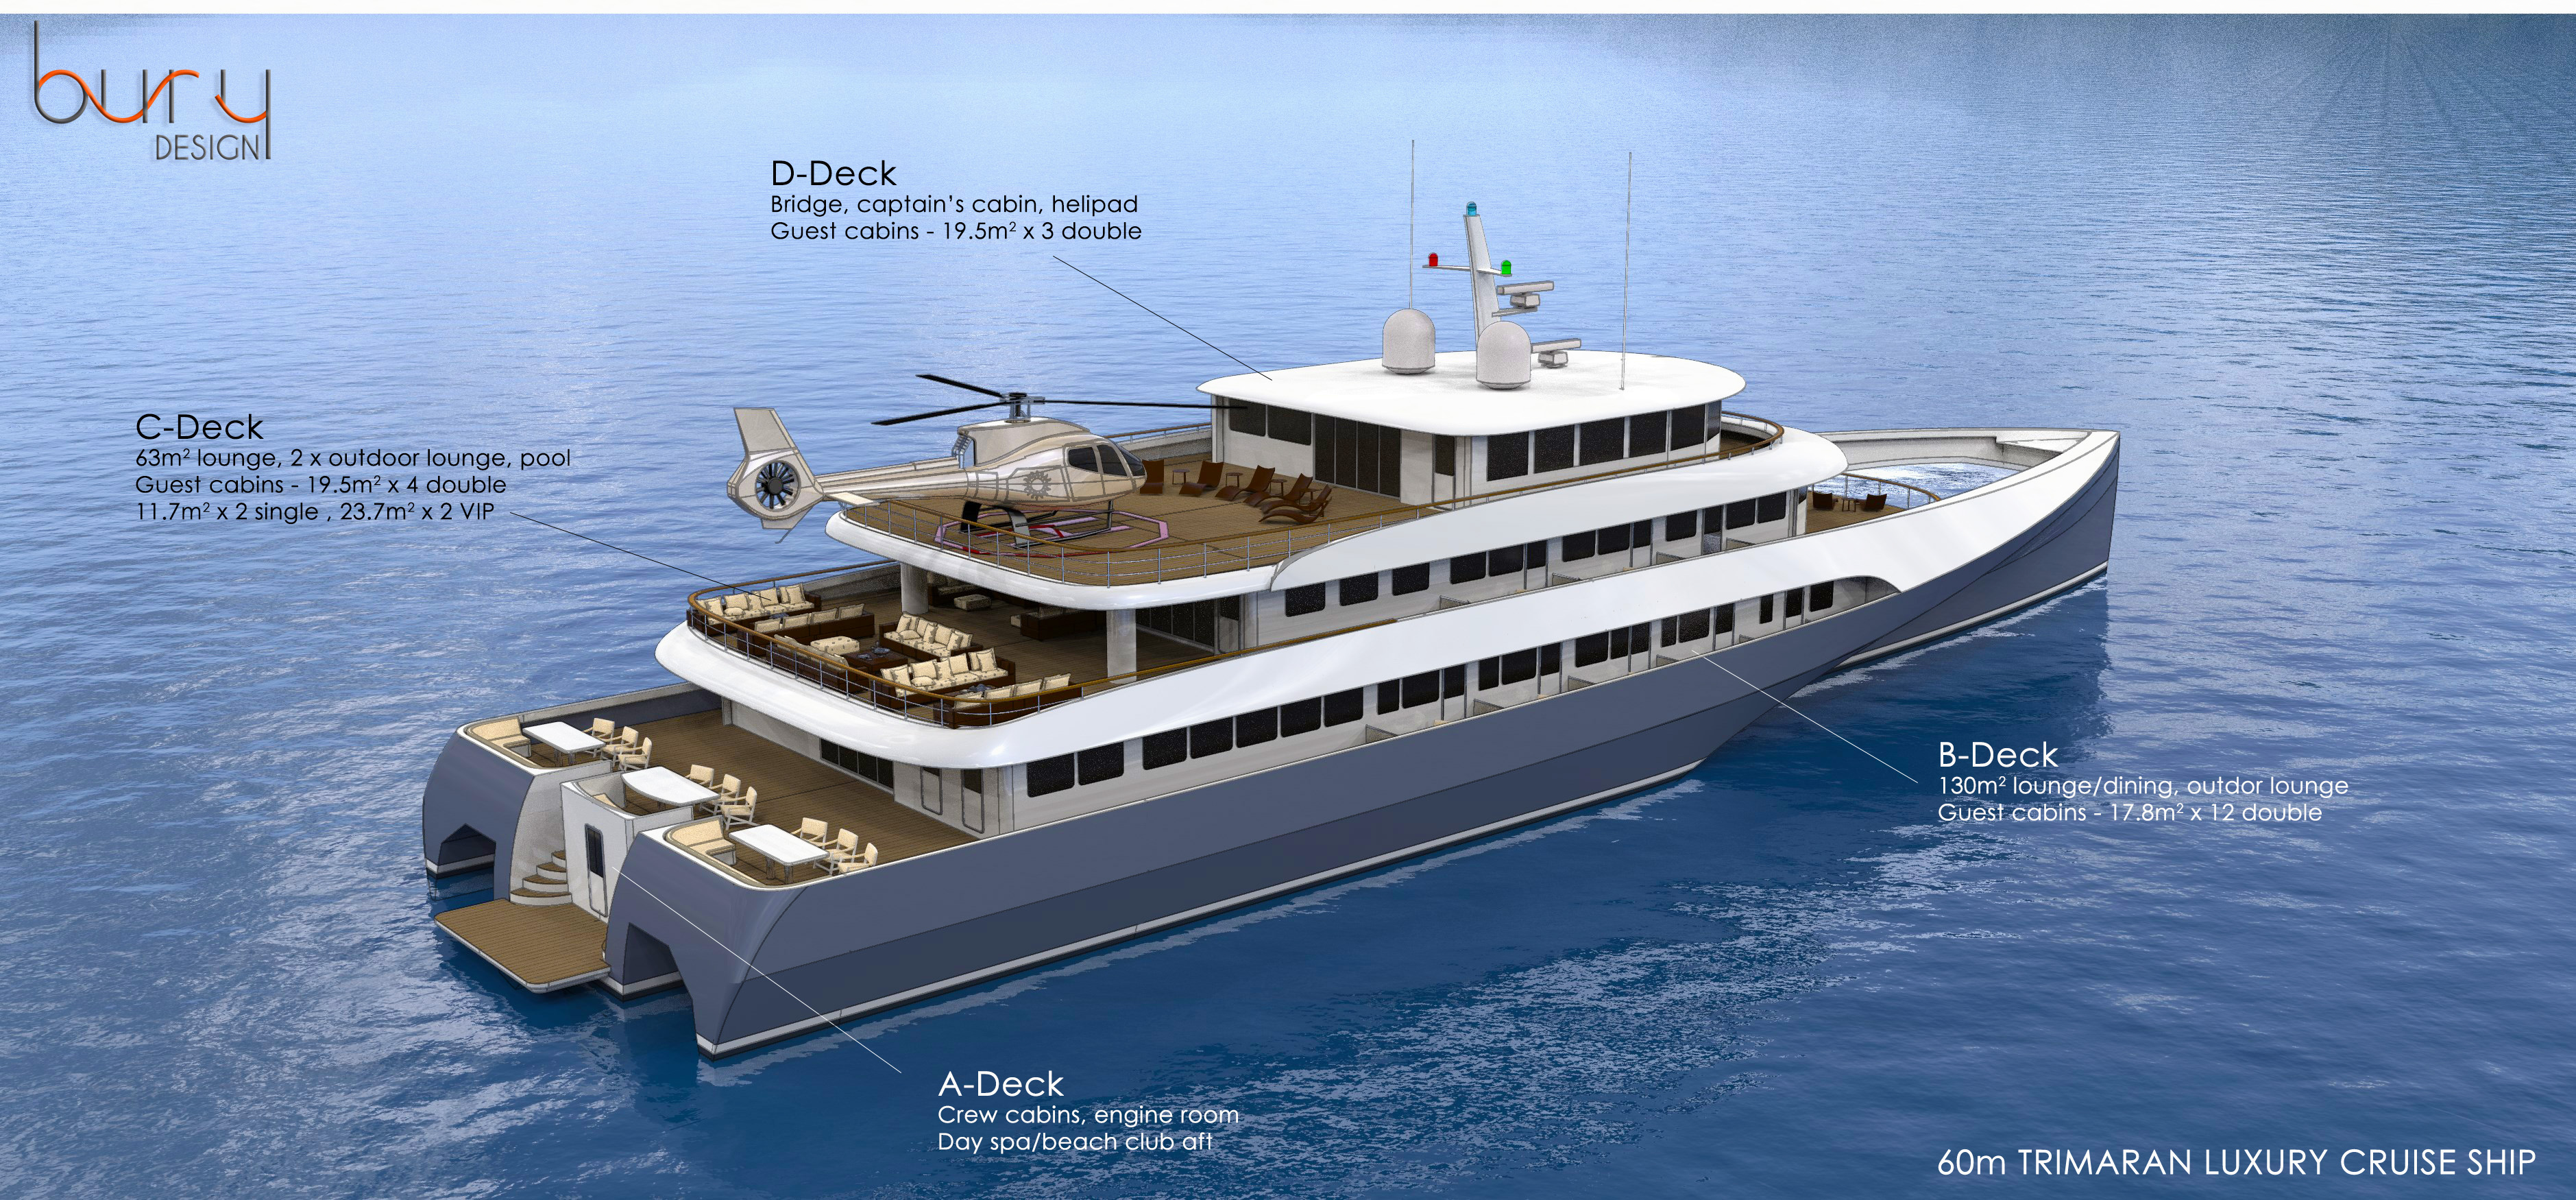 Design M Luxury Cruise Ship Bury Design - Cruise ship speed